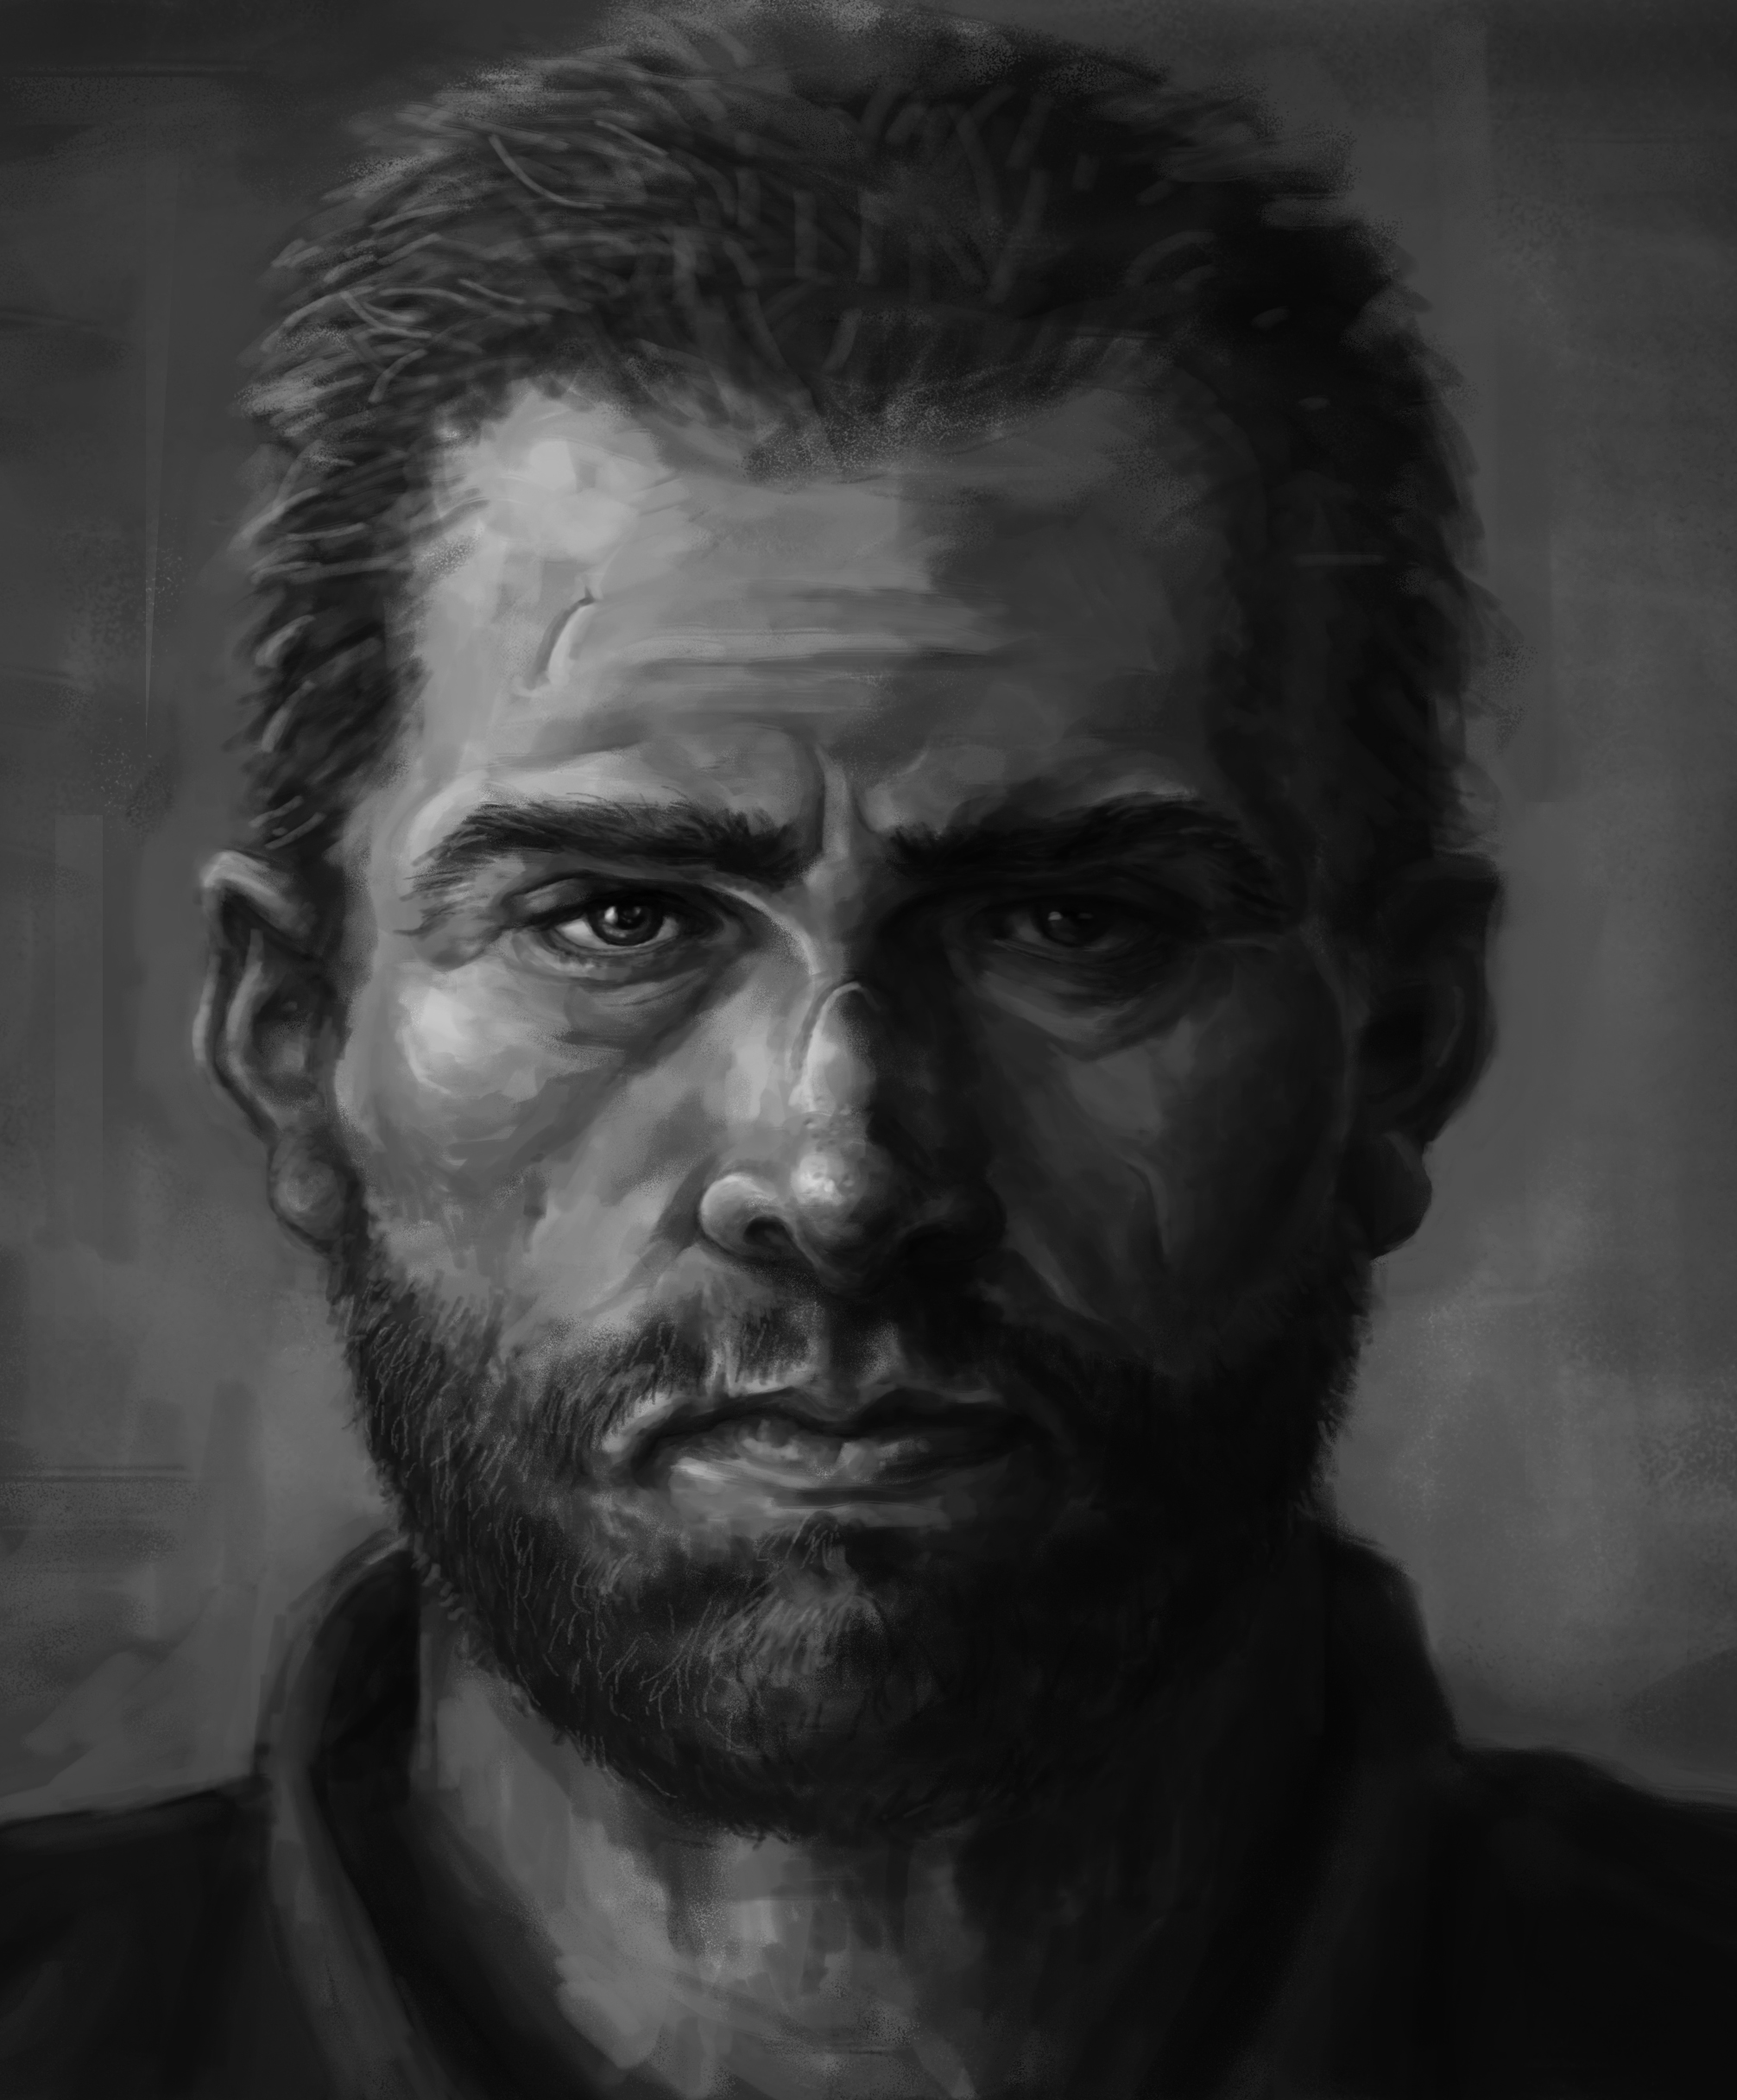 Attempt at realistic face